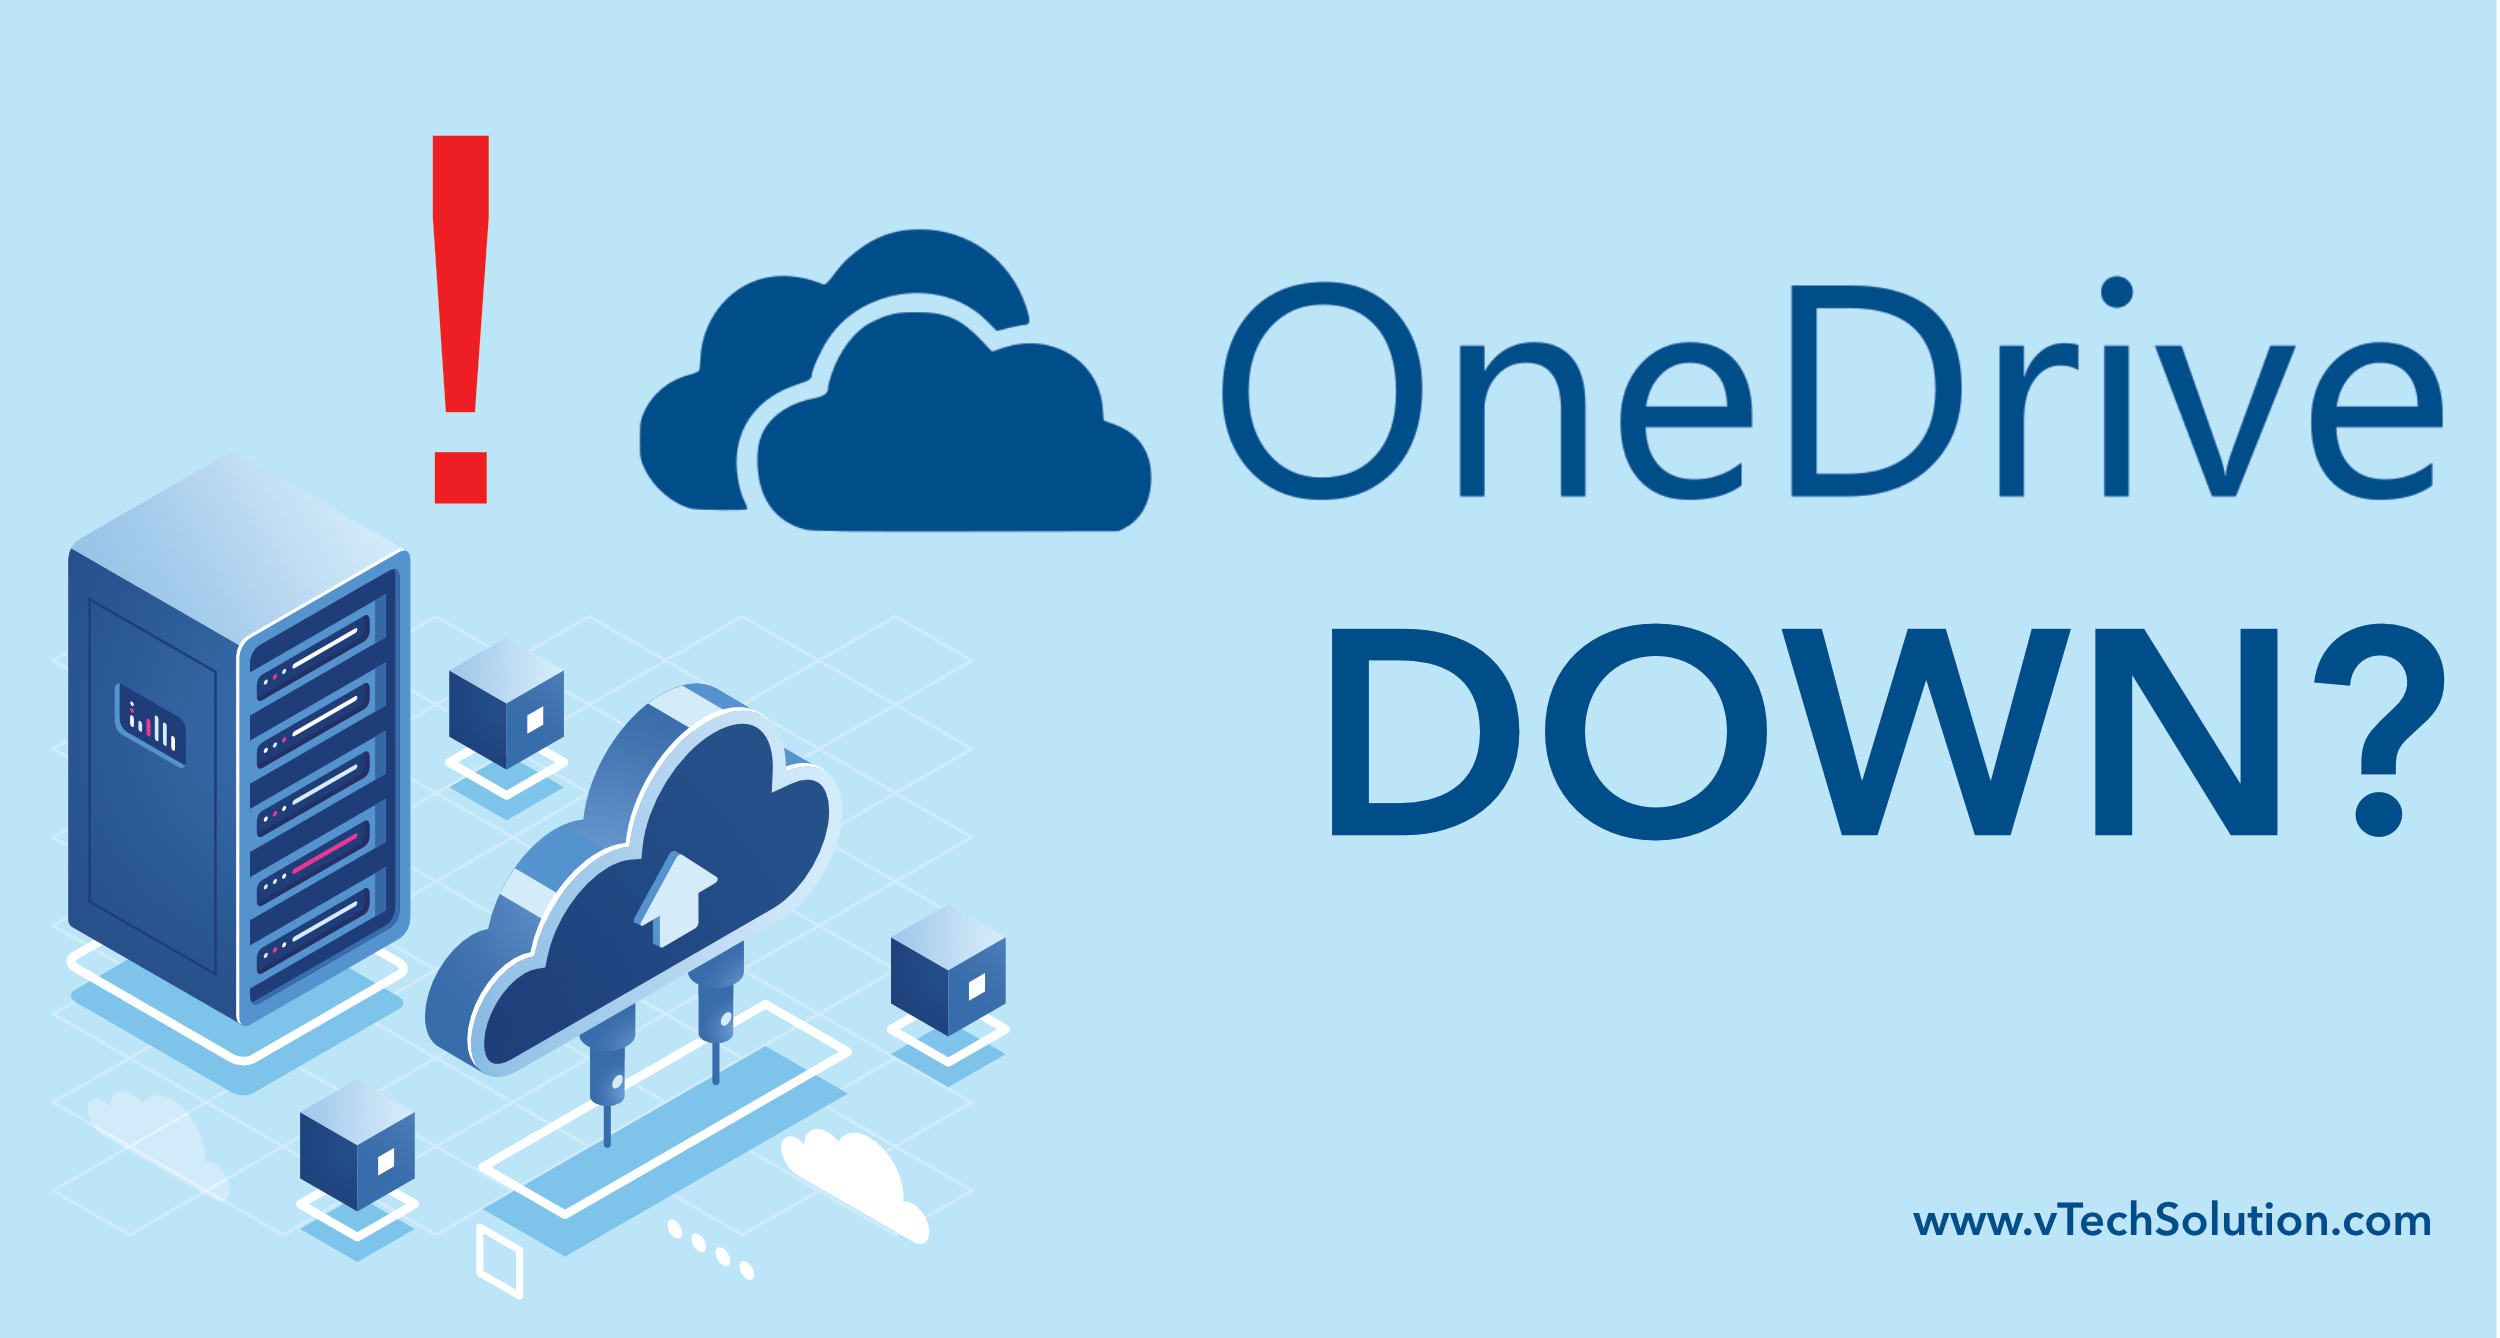 Microsoft OneDrive is Down - vTech Solution